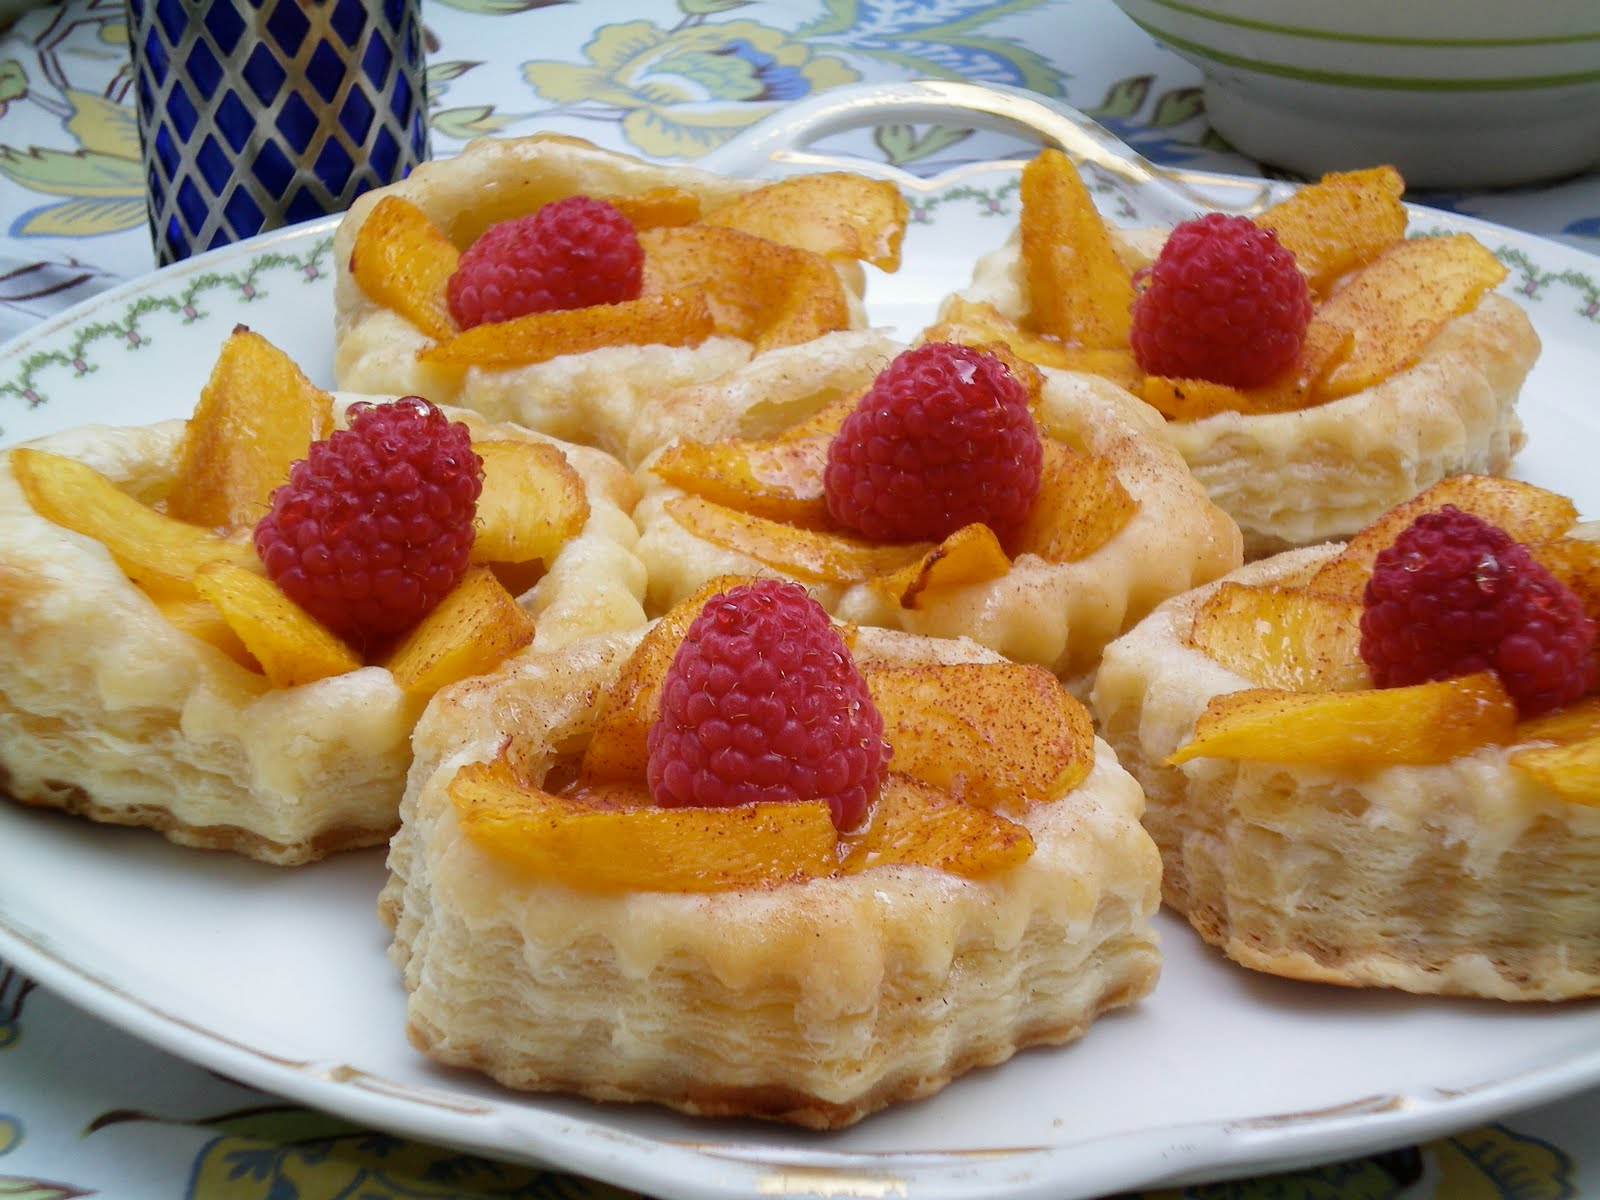 Recreation and leisure spanish almond custard tort recipe this spanish dessert from northern spain is delicious but not too rich serve it for dessert with espresso coffee at any dinner and get rave reviews forumfinder Image collections